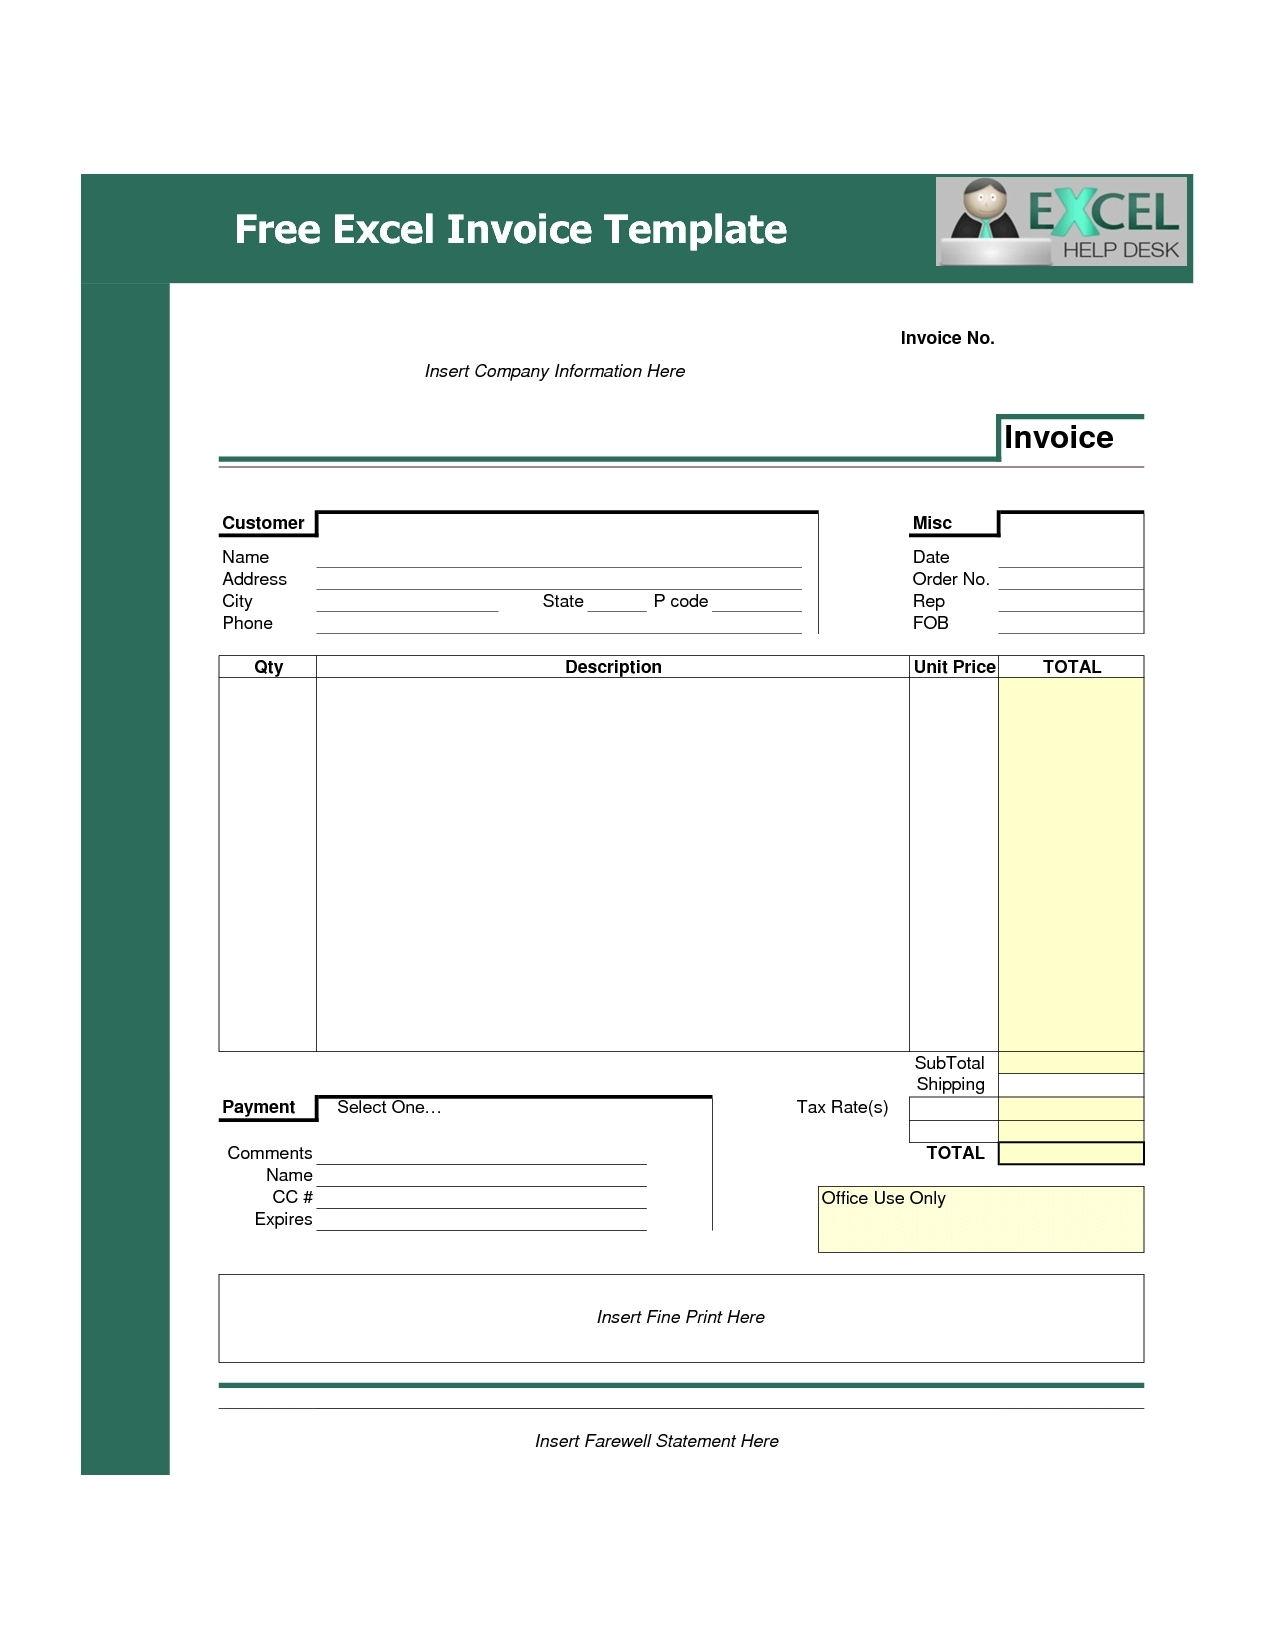 best invoice format free download tax invoice format in excel invoice template free 2016 1275 X 1650